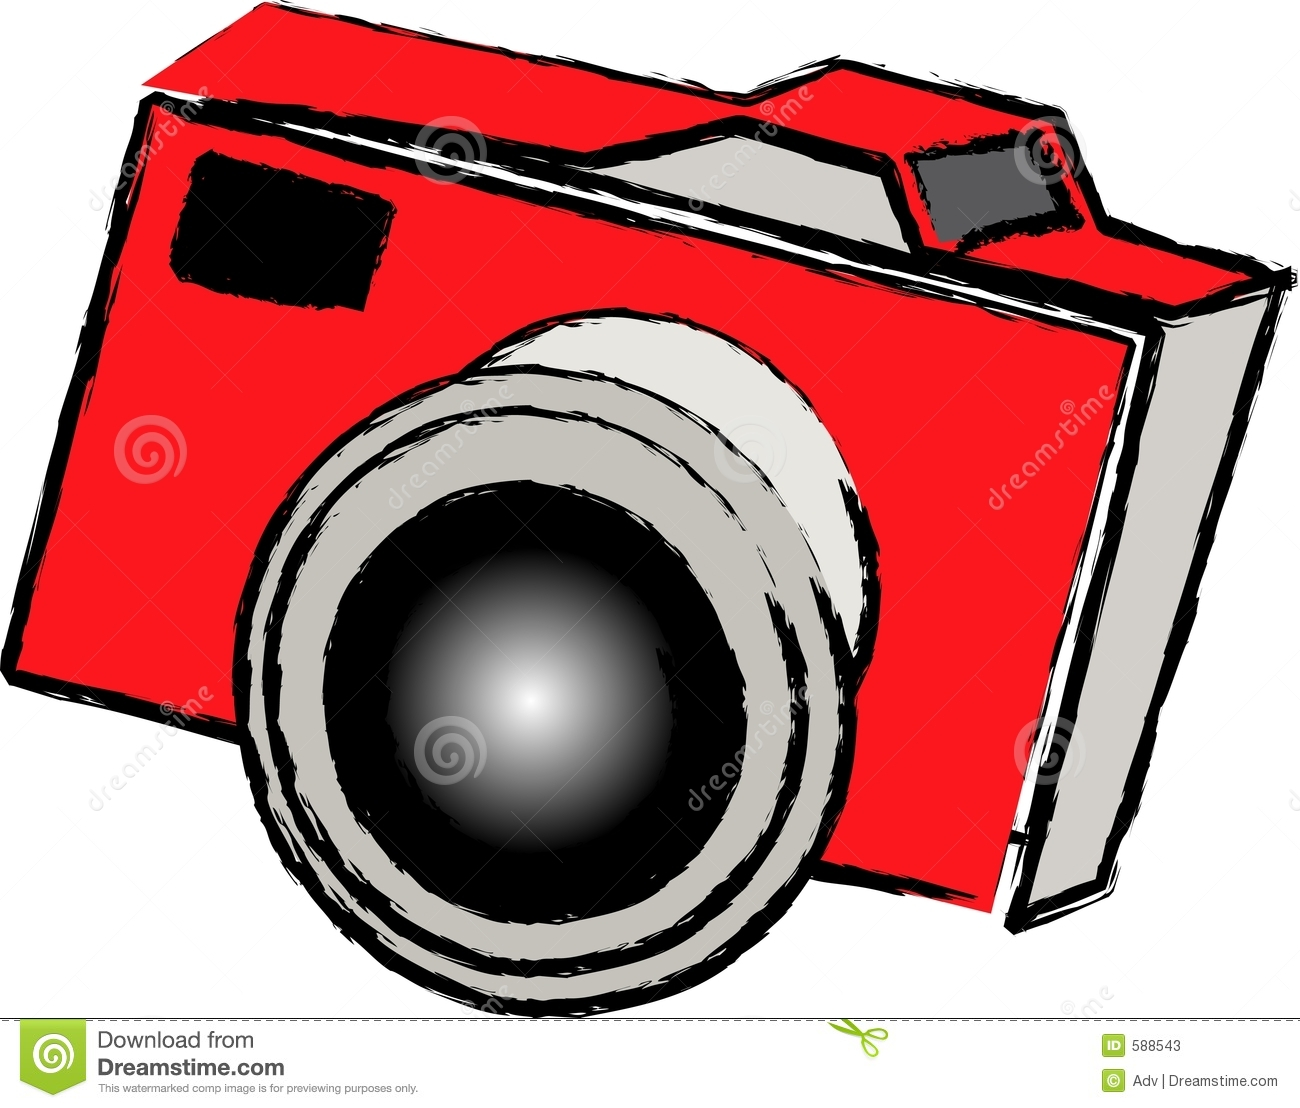 Old School Camera Stock Photos - Image: 588543